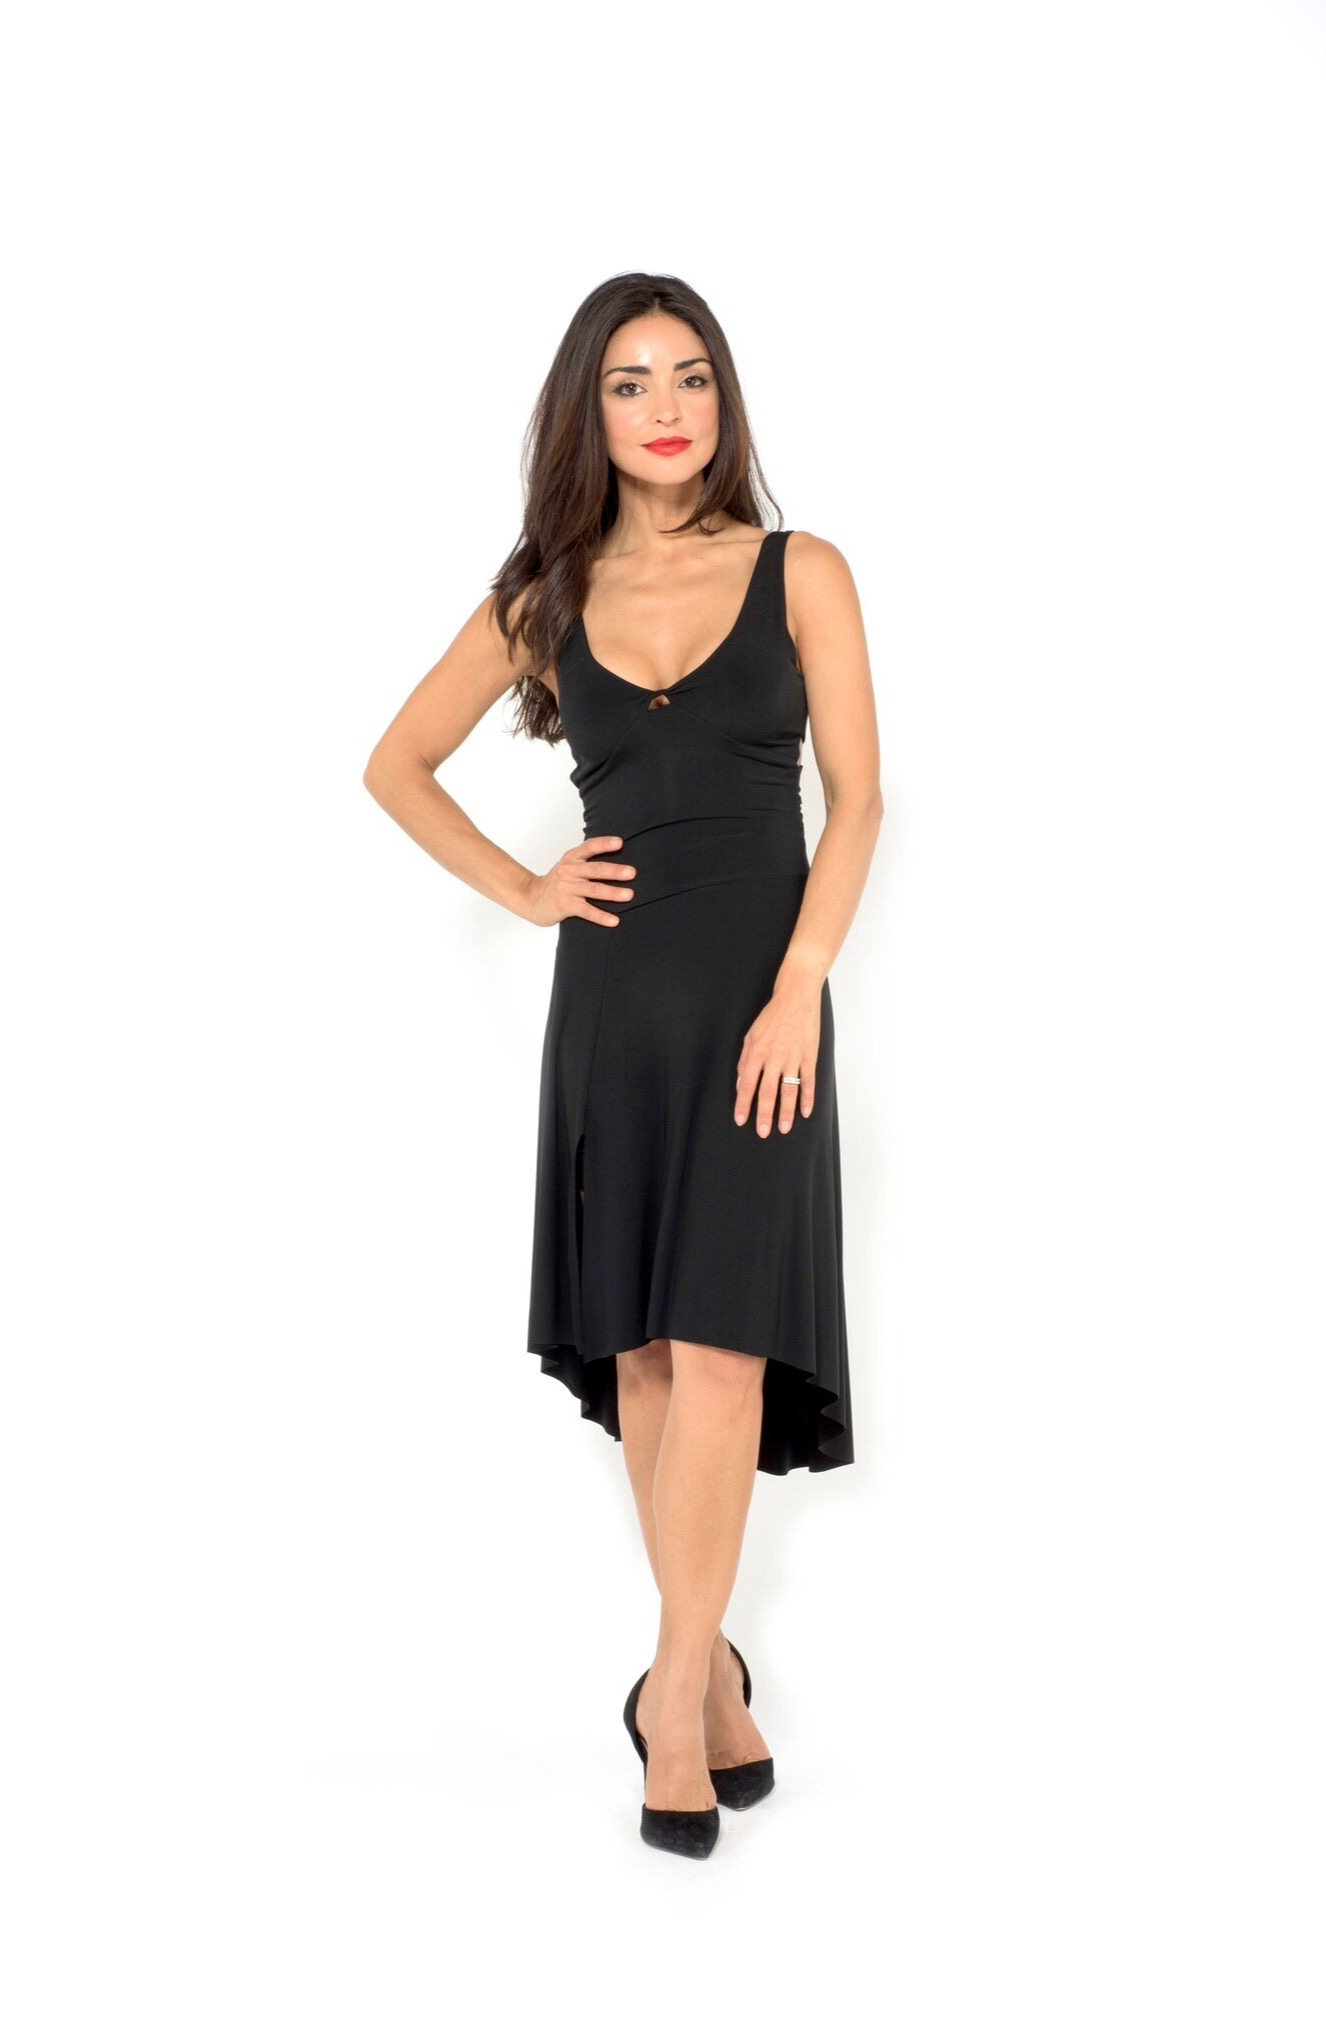 Collection criss cross top dress pictures the fashions of paradise